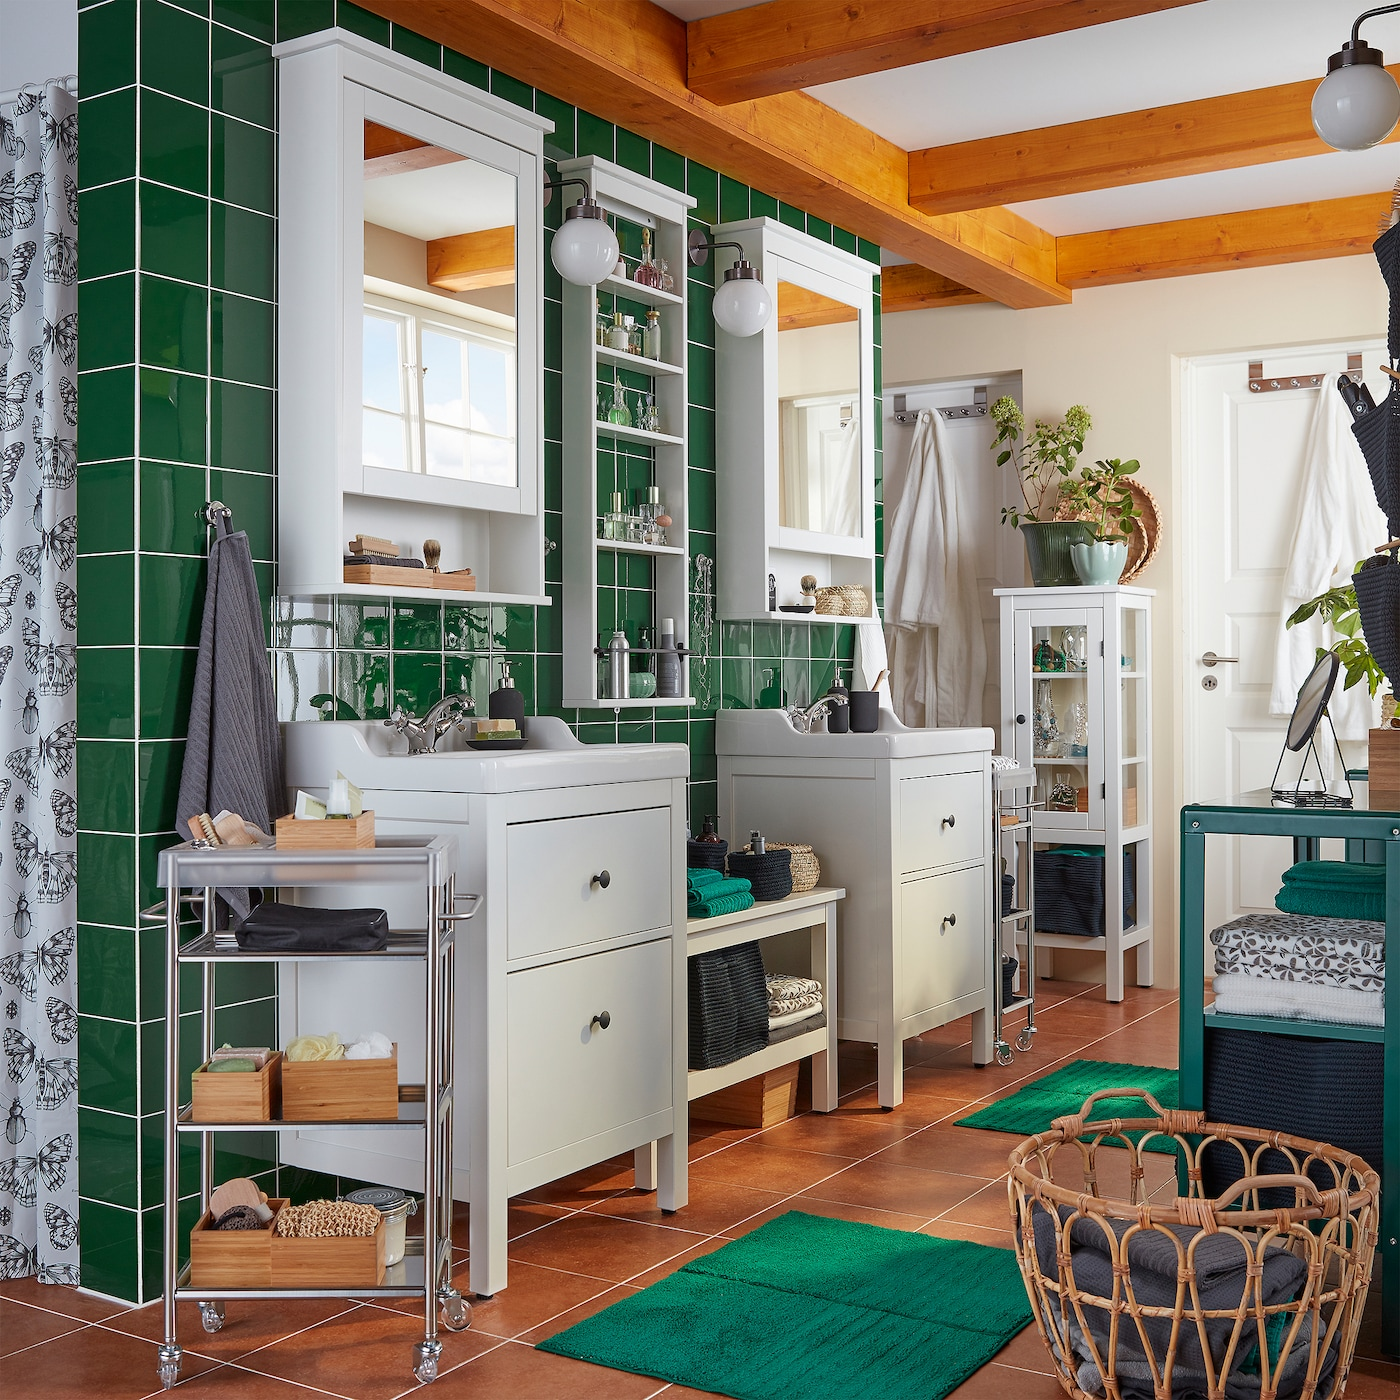 A bathroom with green tiles, two wash basins, two mirror cabinets, a basket in rattan and two green bath mats.